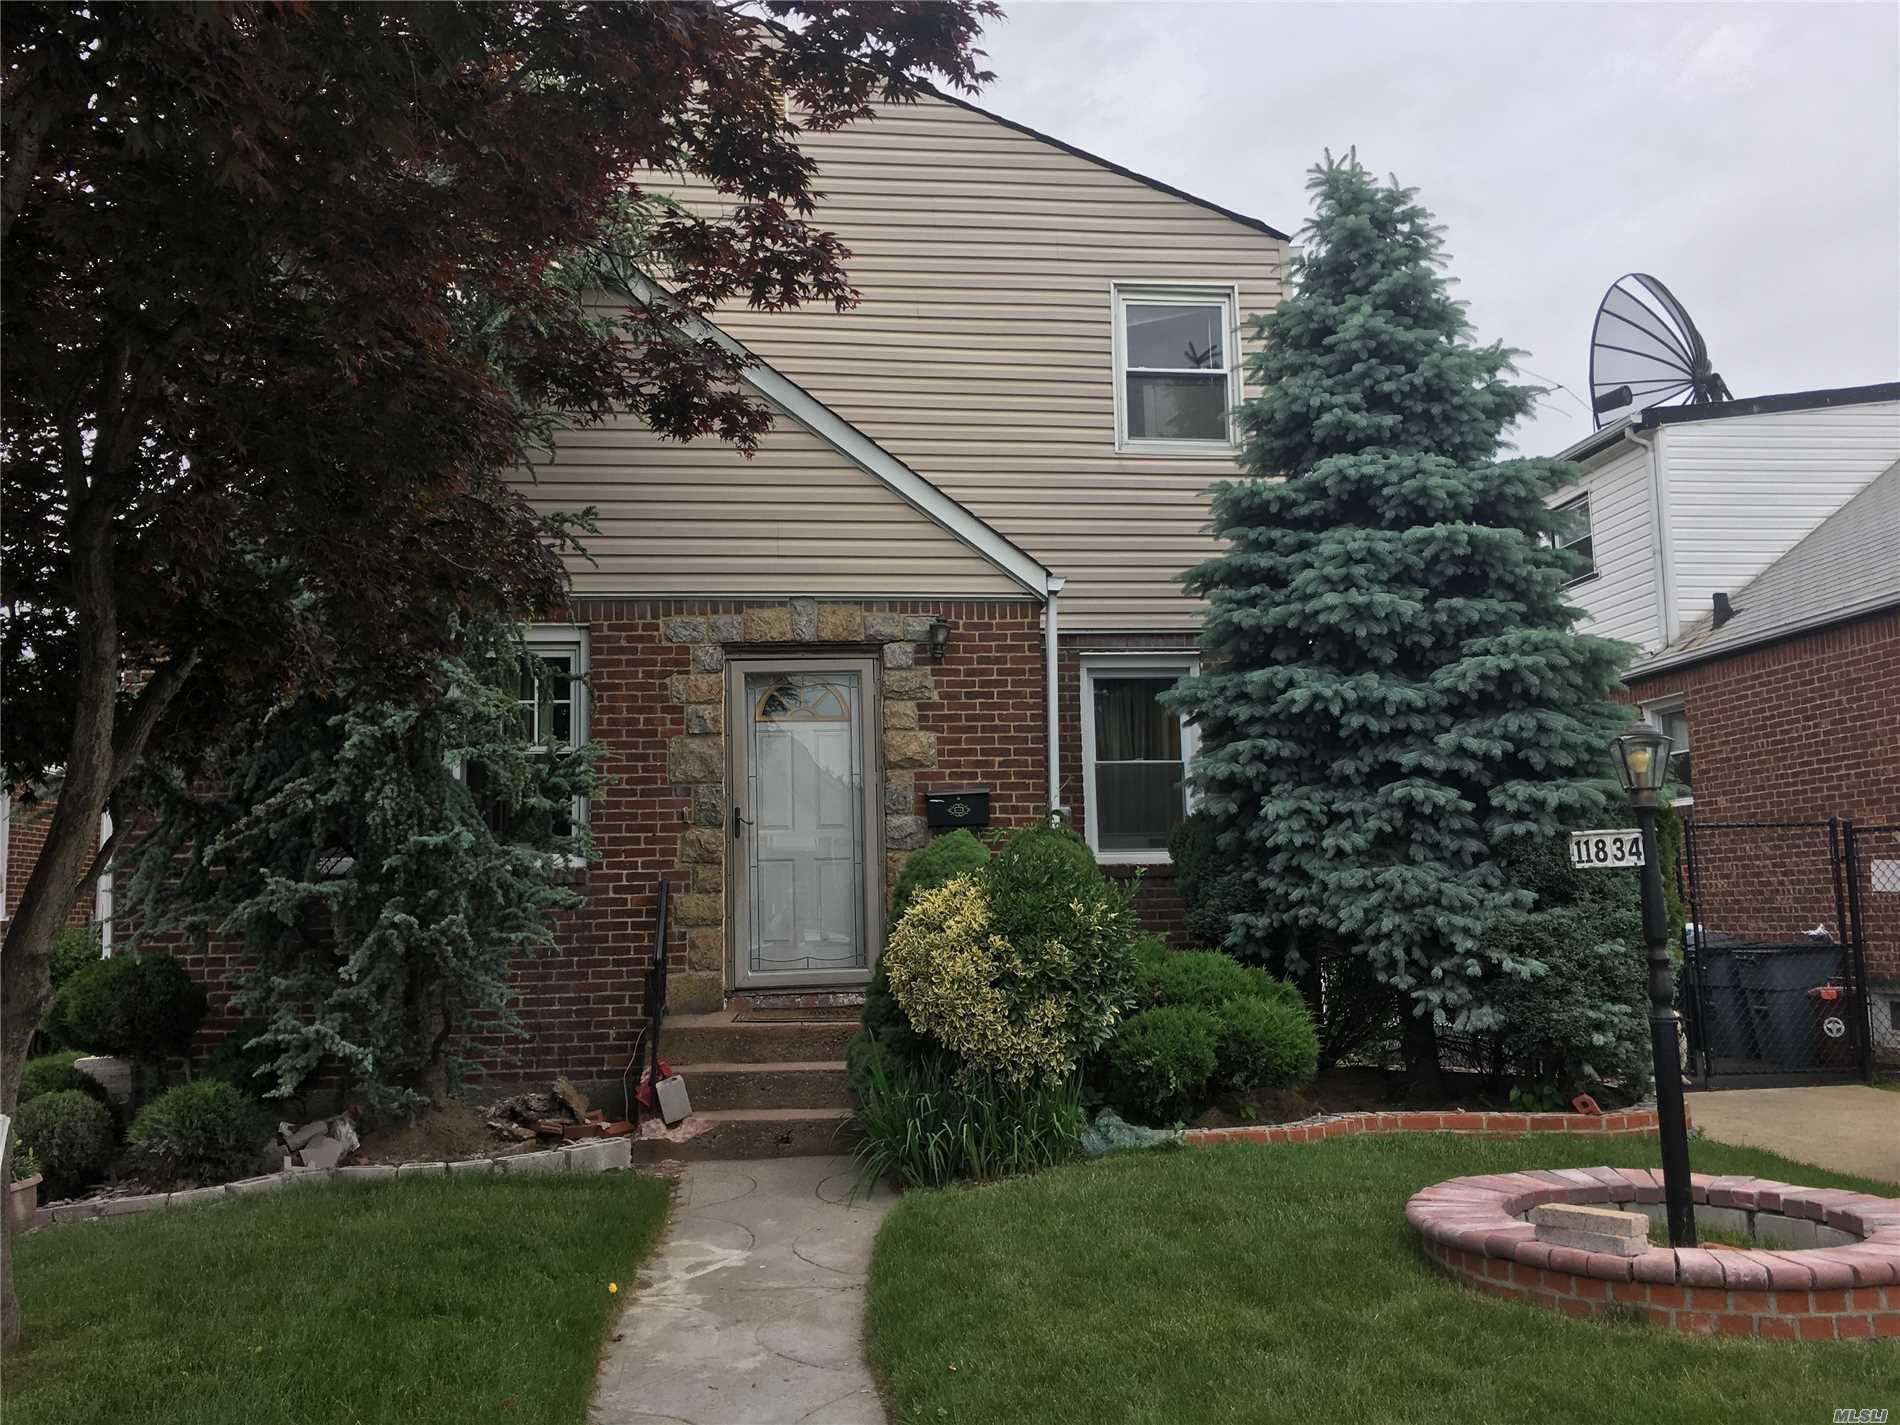 One Of A Kind Home In Cambria Heights- Desirable Neighborhood - Mother/Daughter Set Up - 2 Bedrooms Up And 2 Bedrooms Down- You Could Live Mortgage Free - Finished Basement With 2 Rooms And Outside Entrance- Well Maintained Home - Professionally Landscaped- Take A Look At This Home